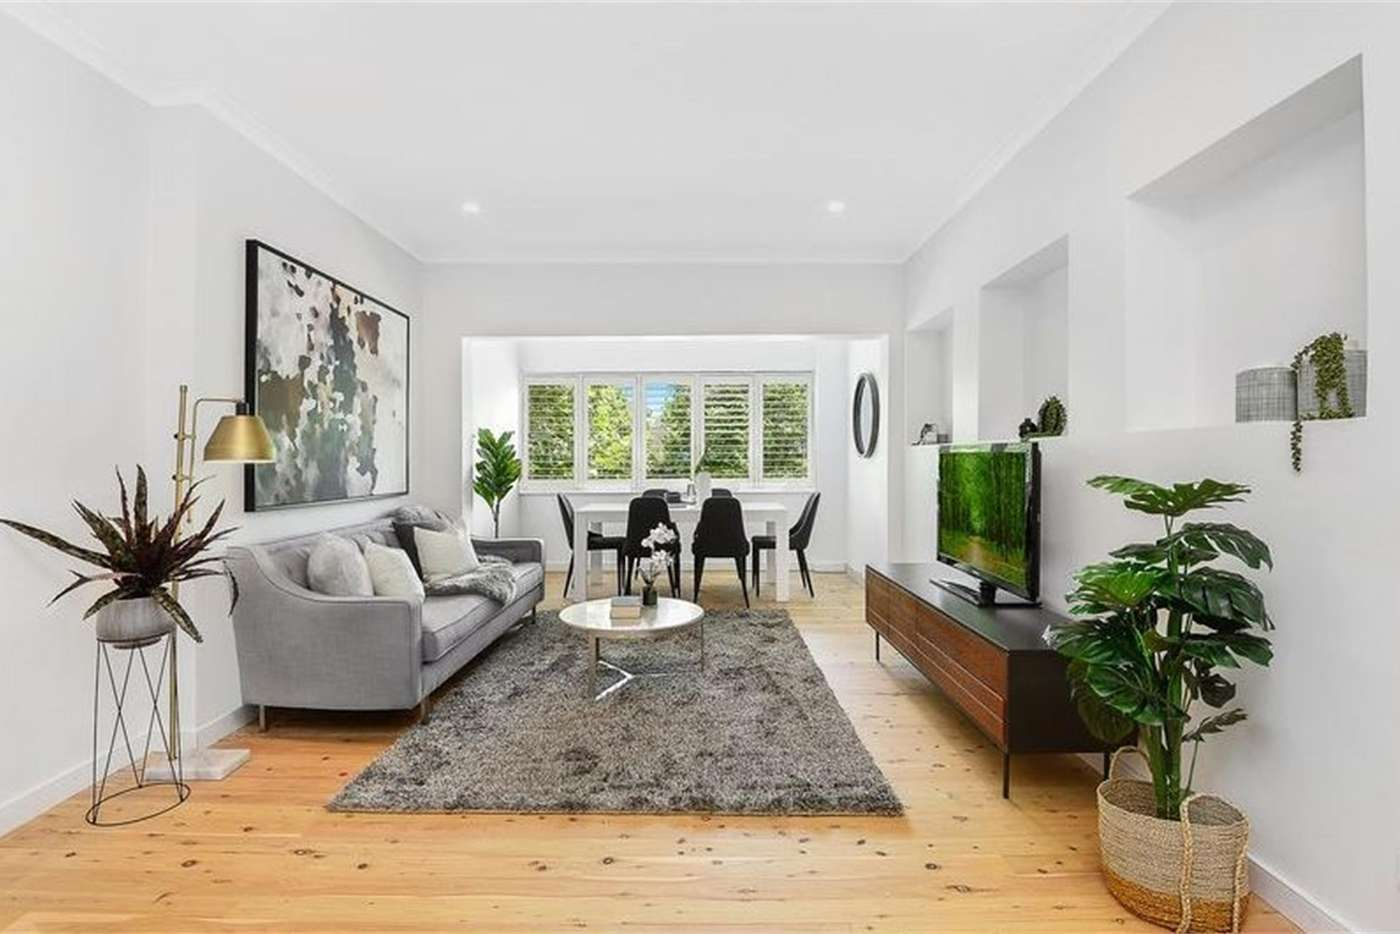 Main view of Homely apartment listing, 9/107 Alison Rd, Randwick NSW 2031